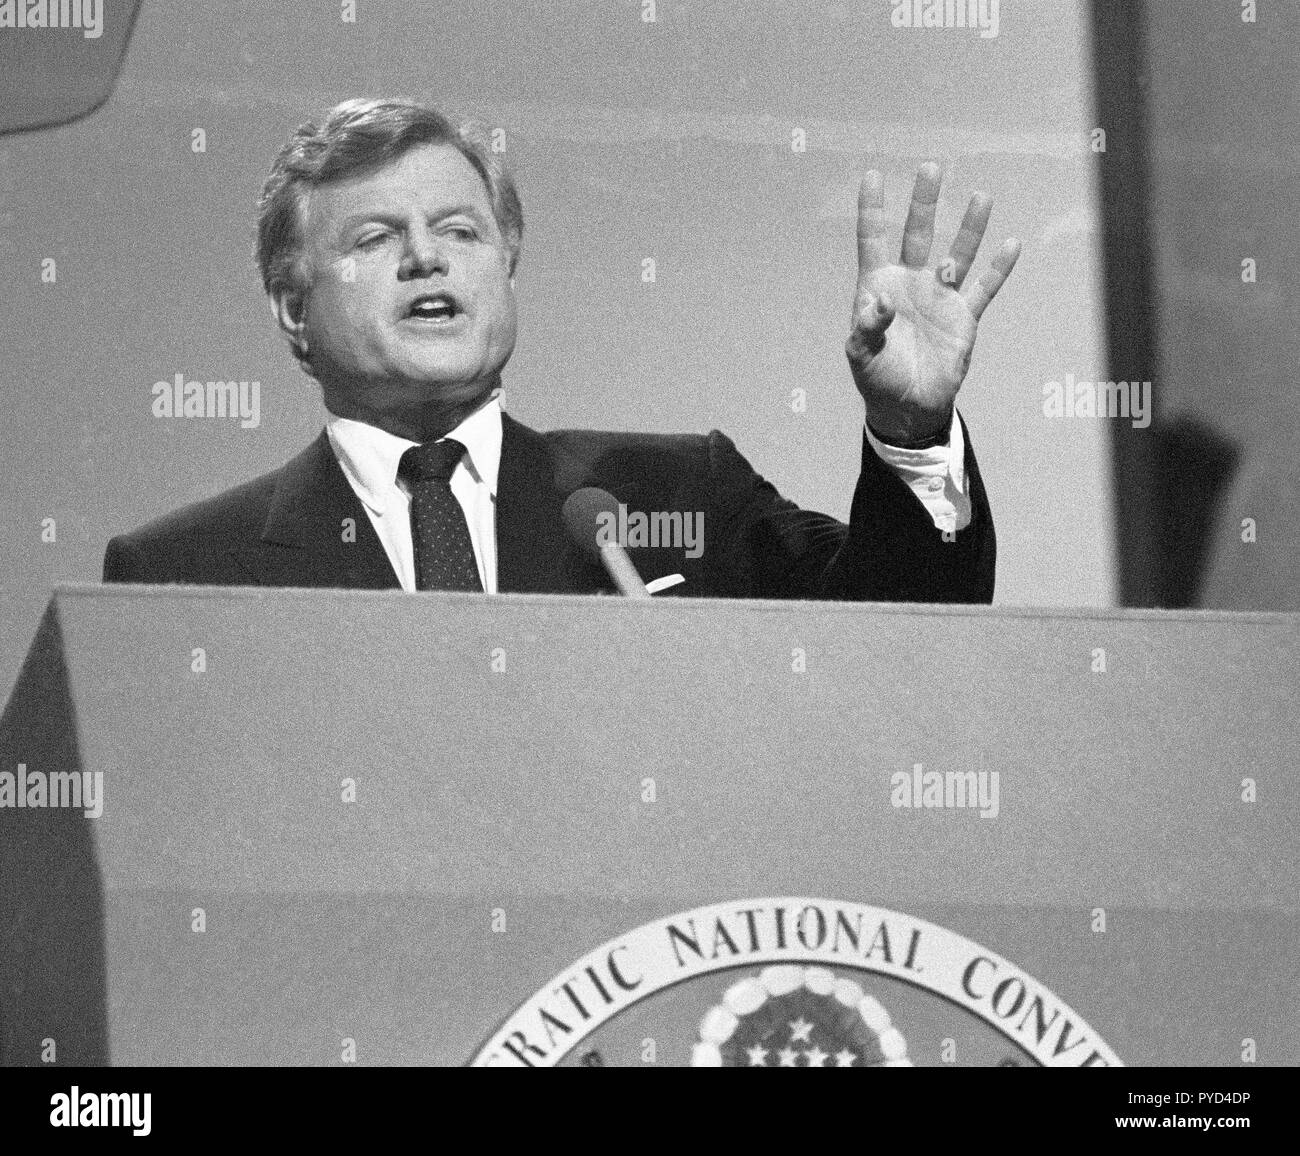 Massachusetts, US Senator Edward Kennedy speaking at the 1984 Democratic Party Convention at Moscone Center in San Francisco, California - Stock Image